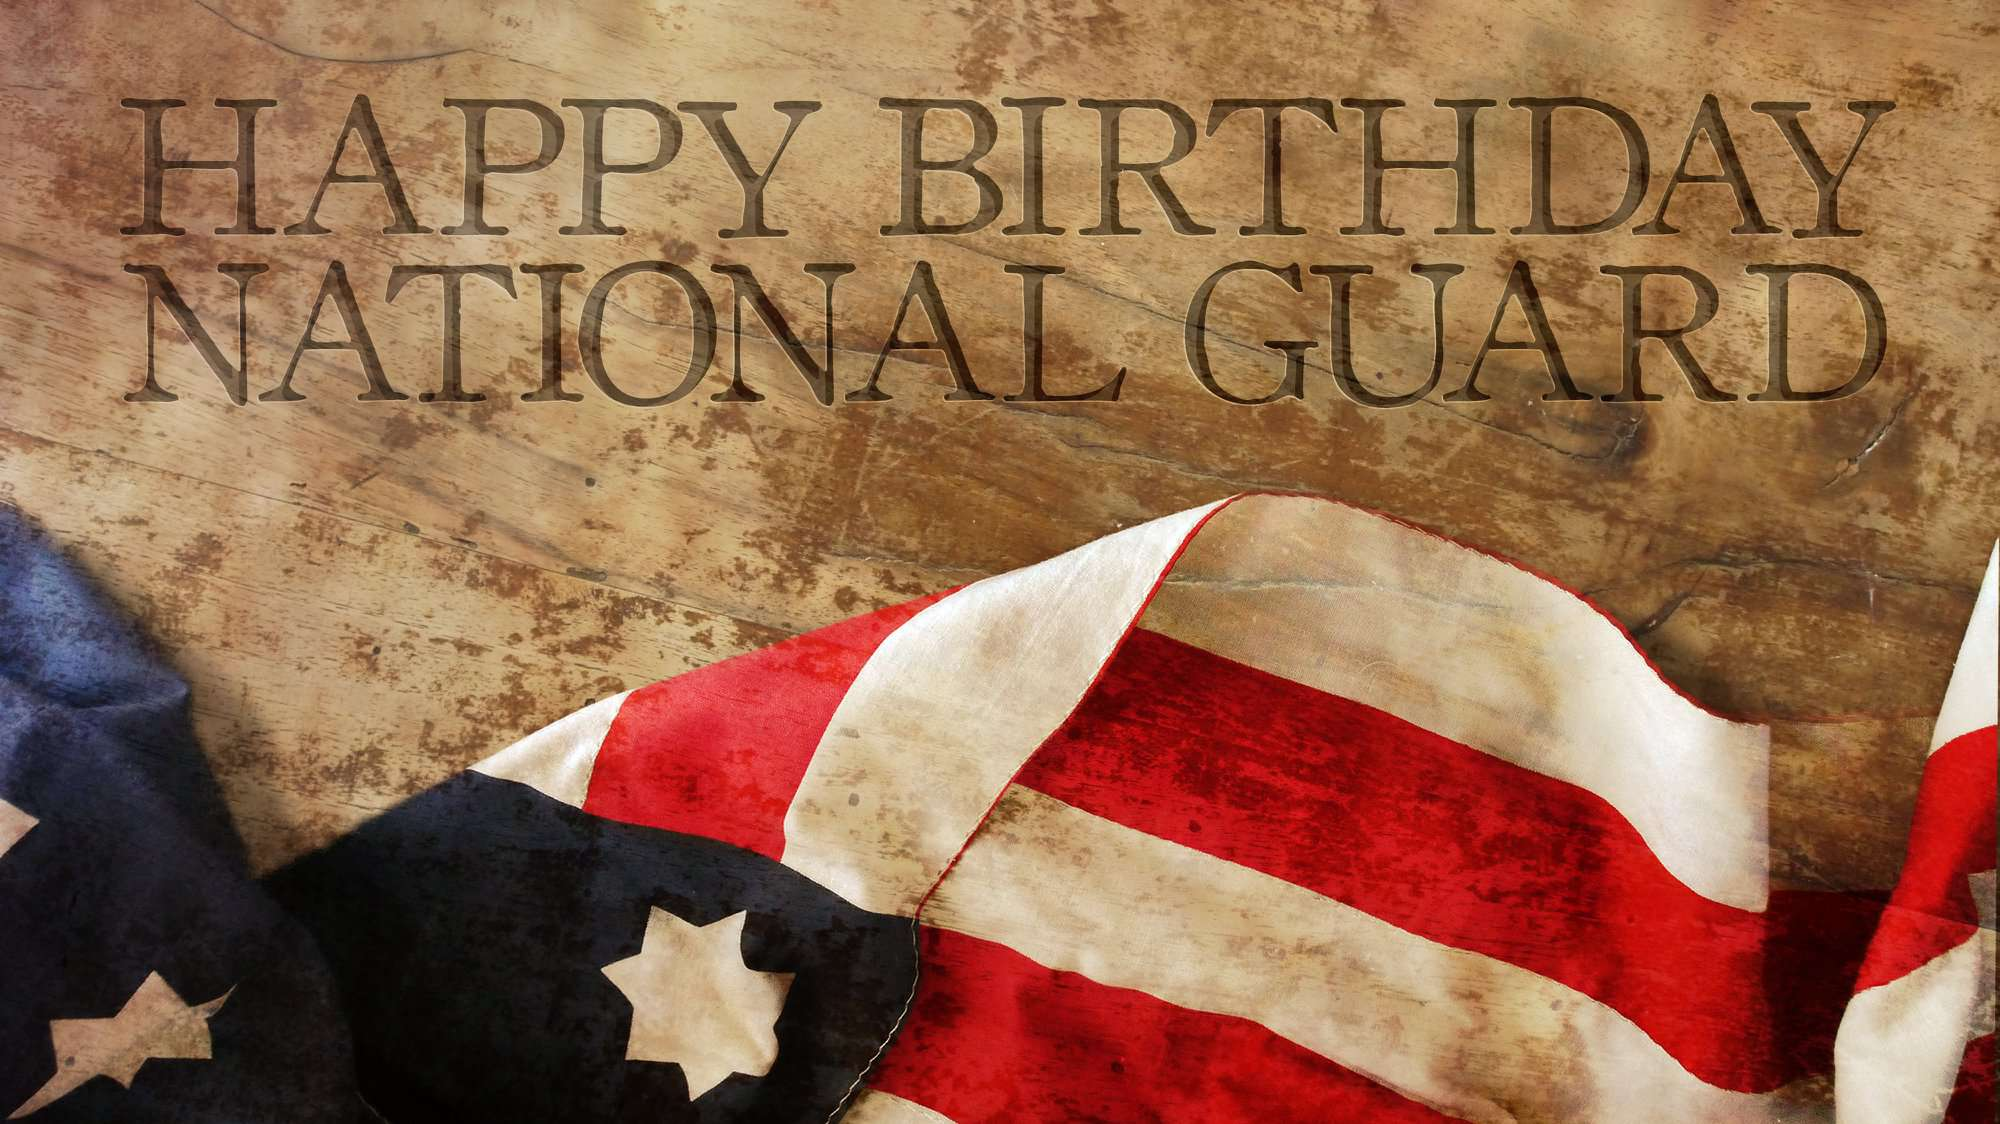 U.S. National Guard Birthday Wishes for Whatsapp